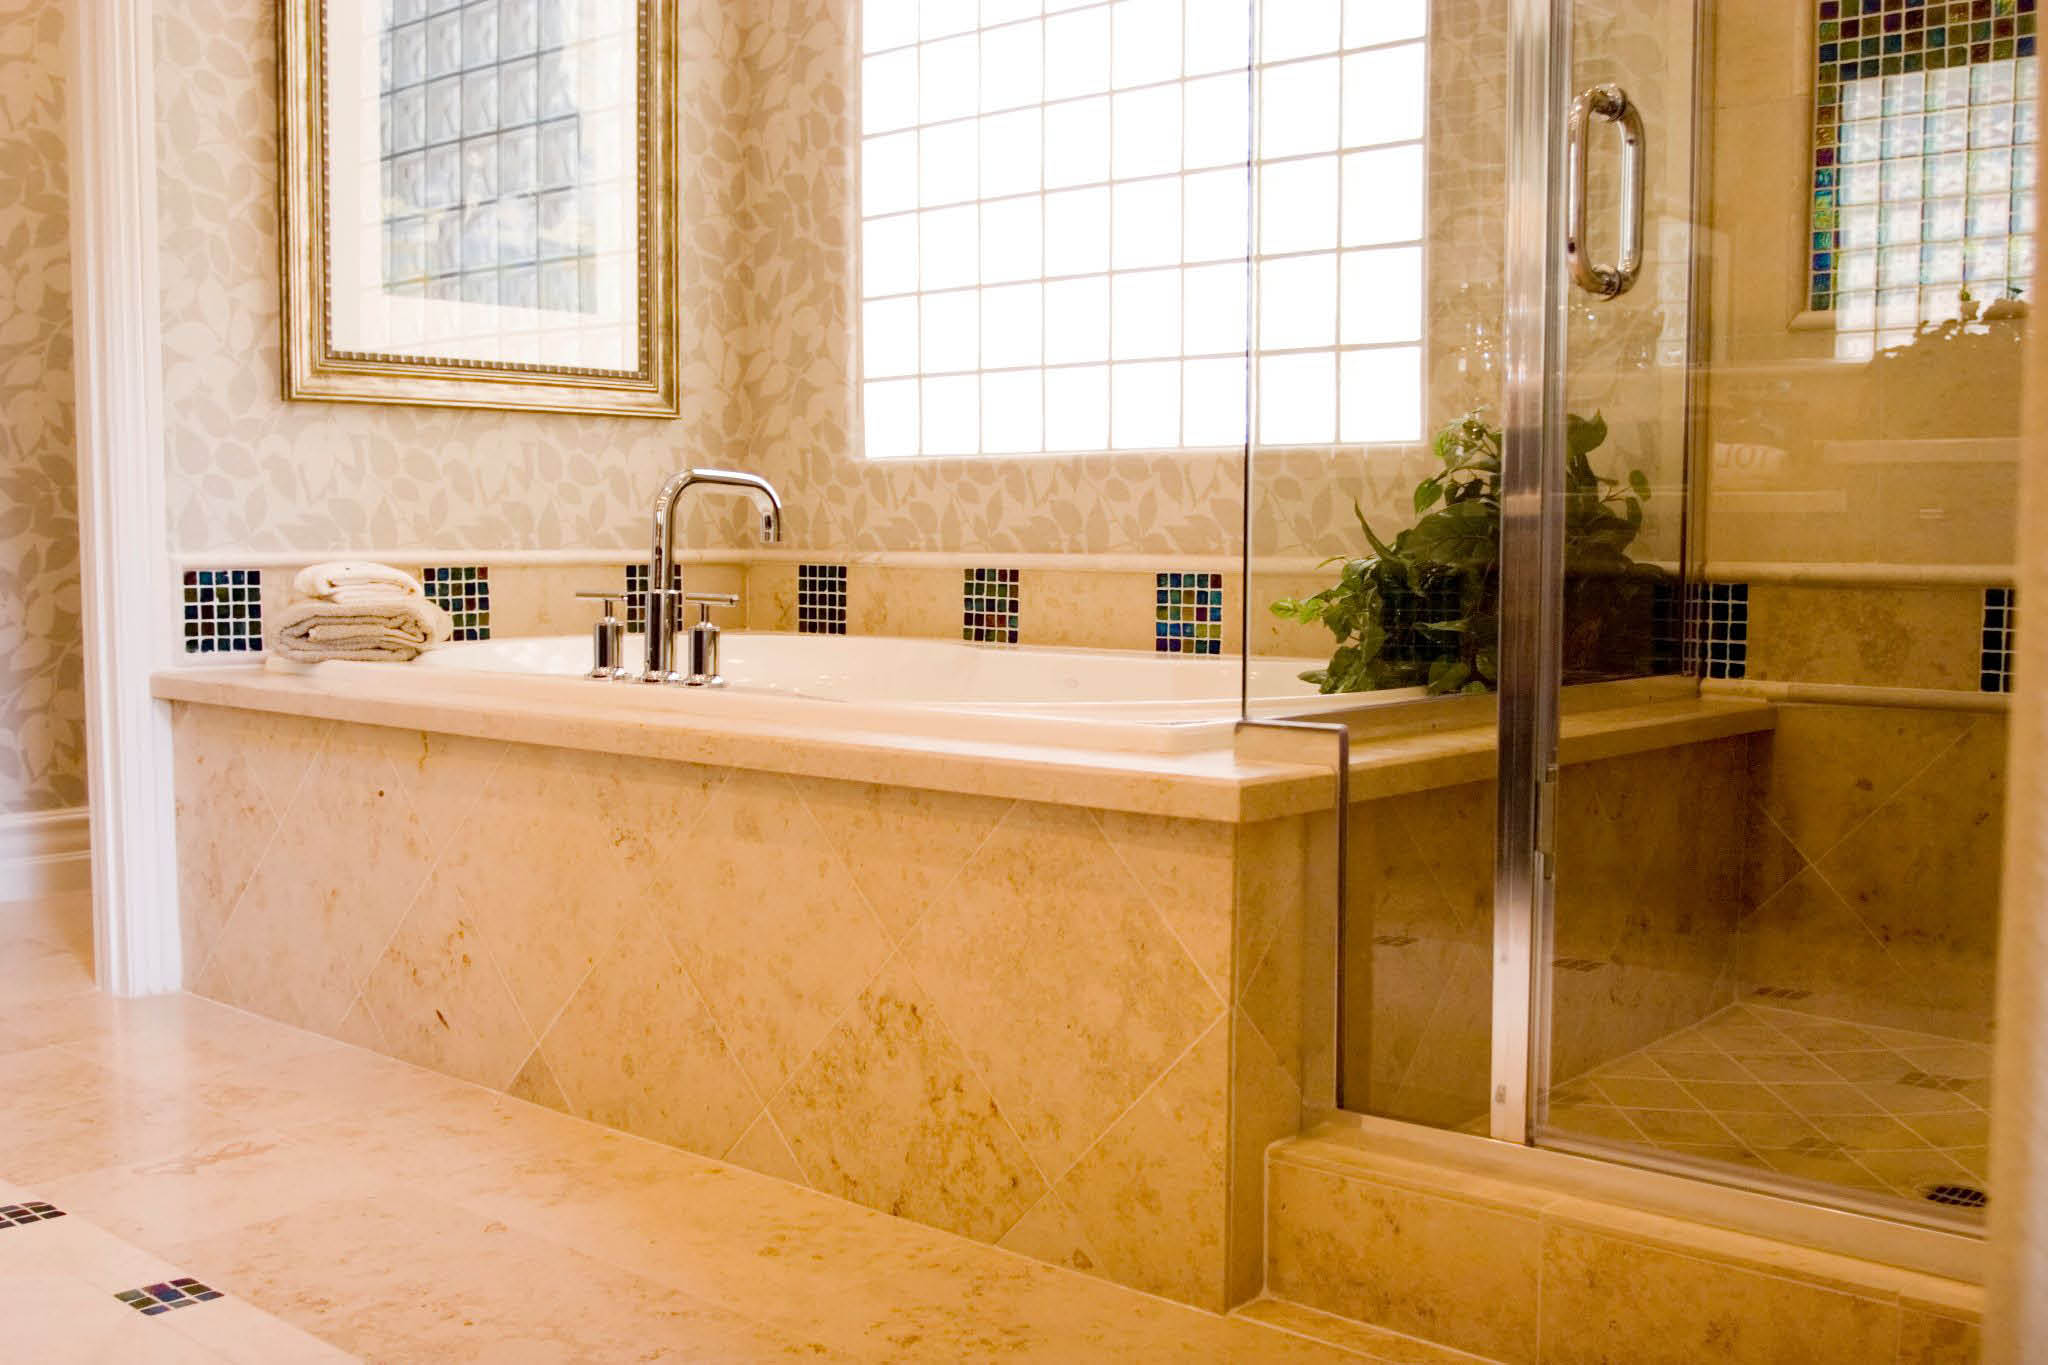 cost for shower remodel, home bath renovations, best bathroom remodeling company